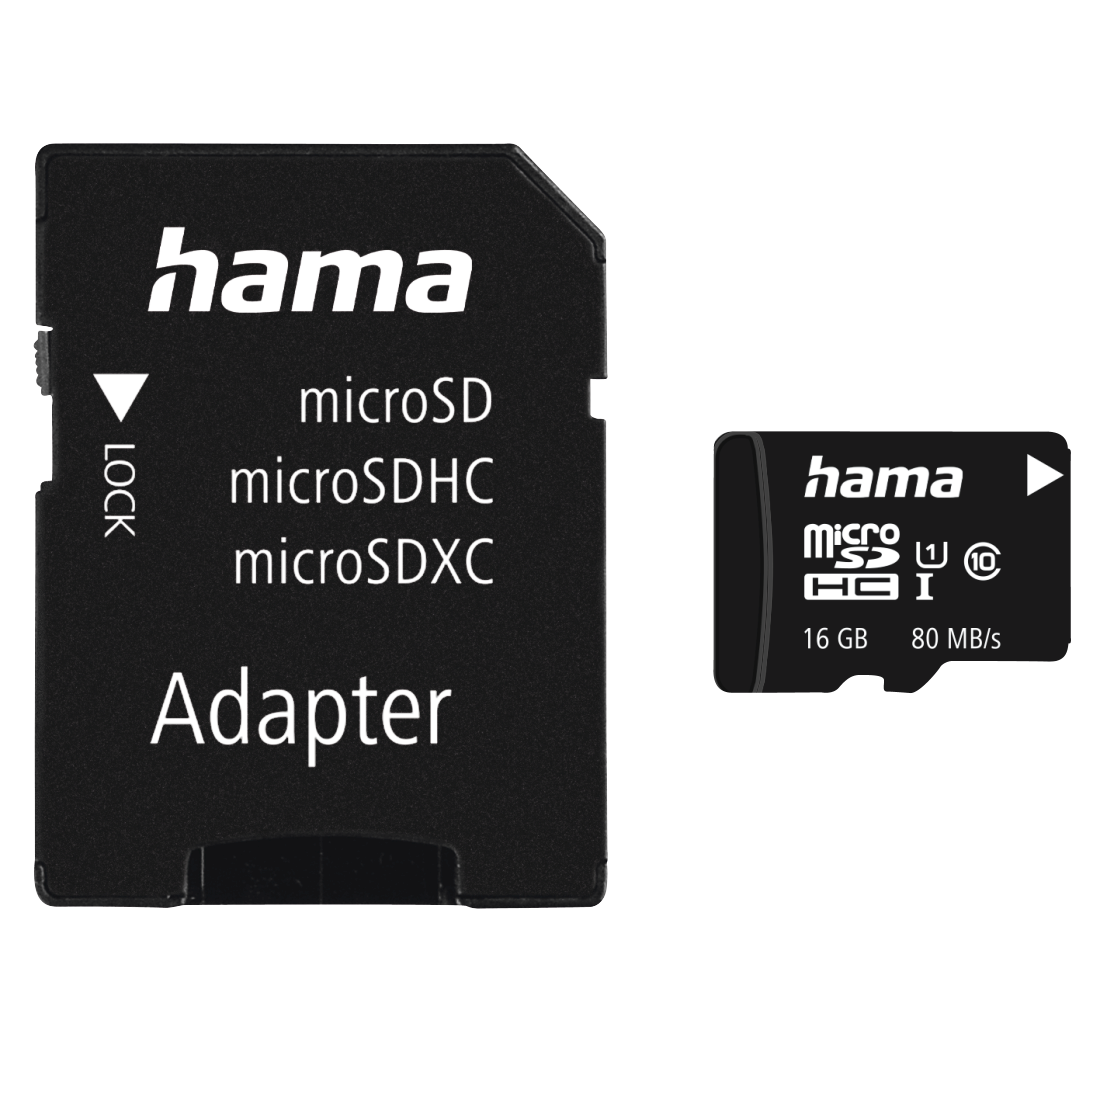 abx Druckfähige Abbildung - Hama, microSDHC 16GB Class 10 UHS-I 80MB/s + Adapter/Mobile